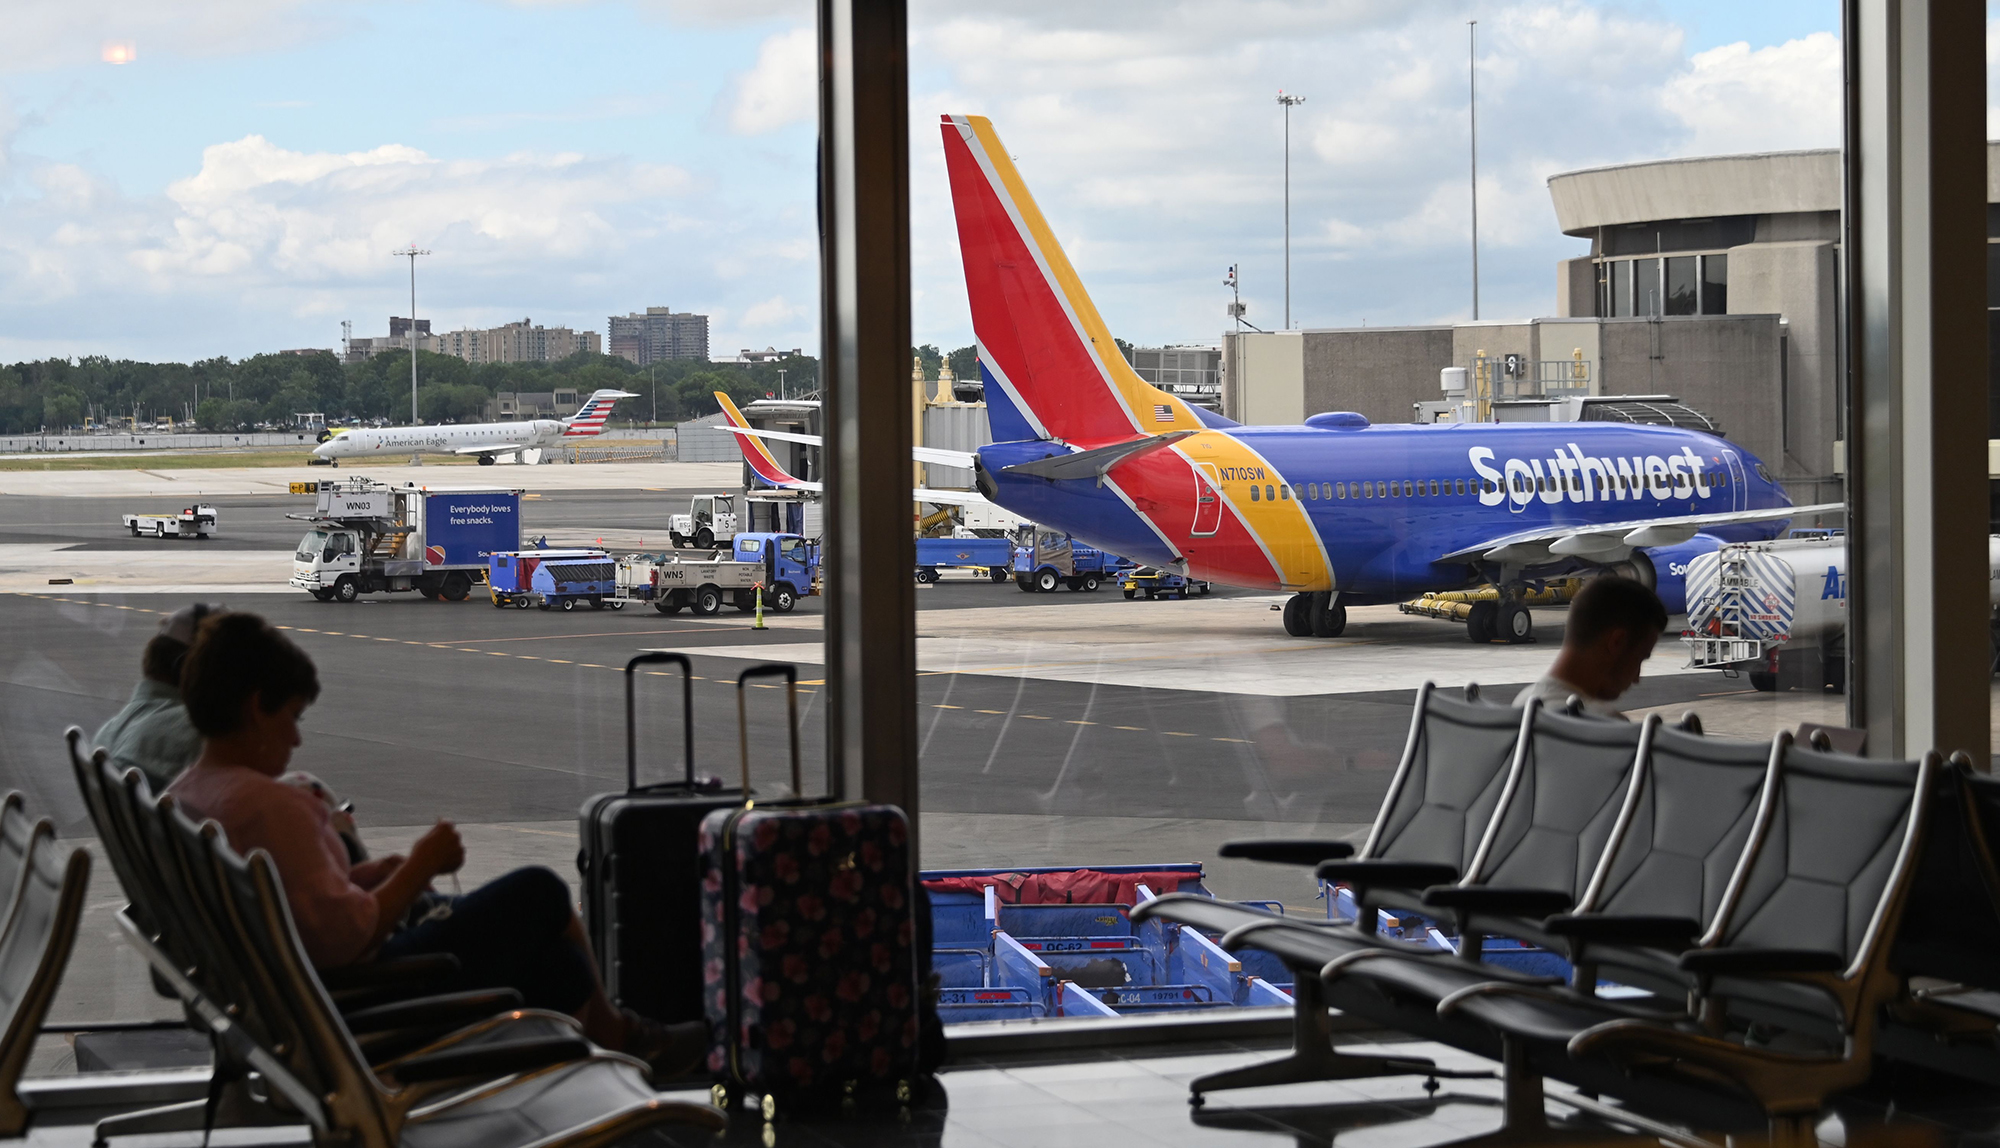 Southwest says it needs all flight attendants back at work this summer